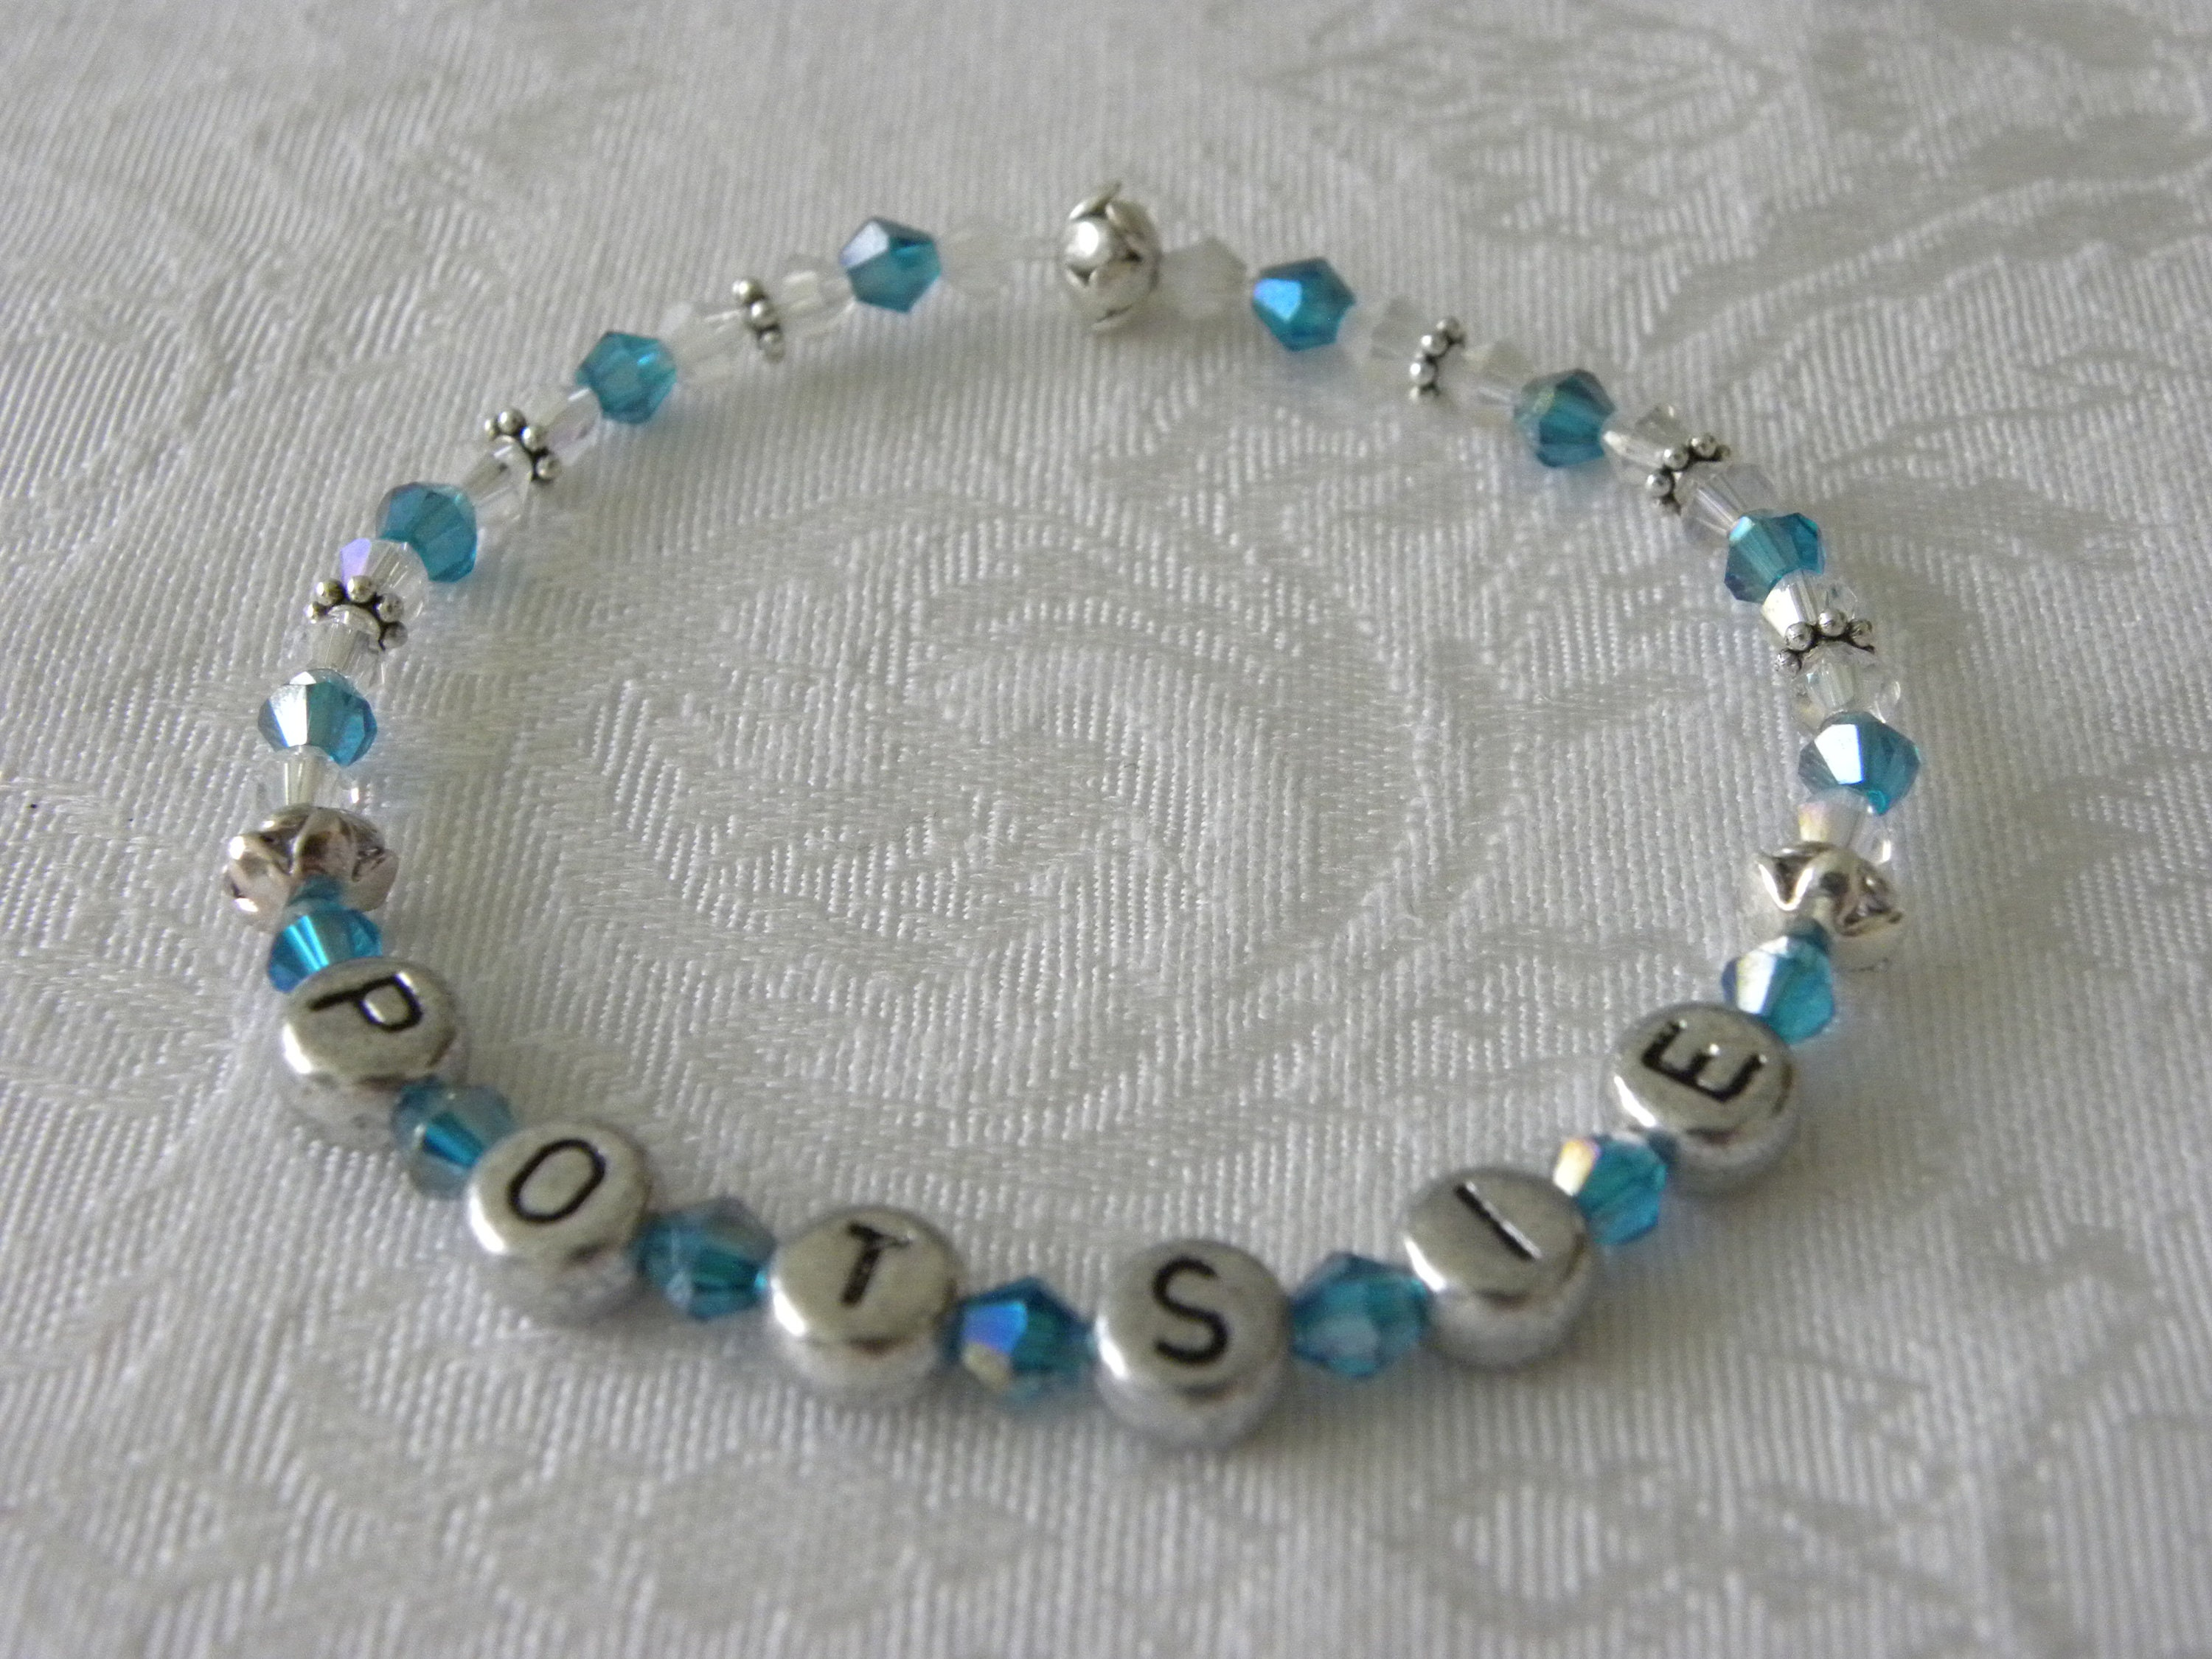 chronic on spoonspirations etsy illness fullxfull bracelet by dysautonomia shop hope isla